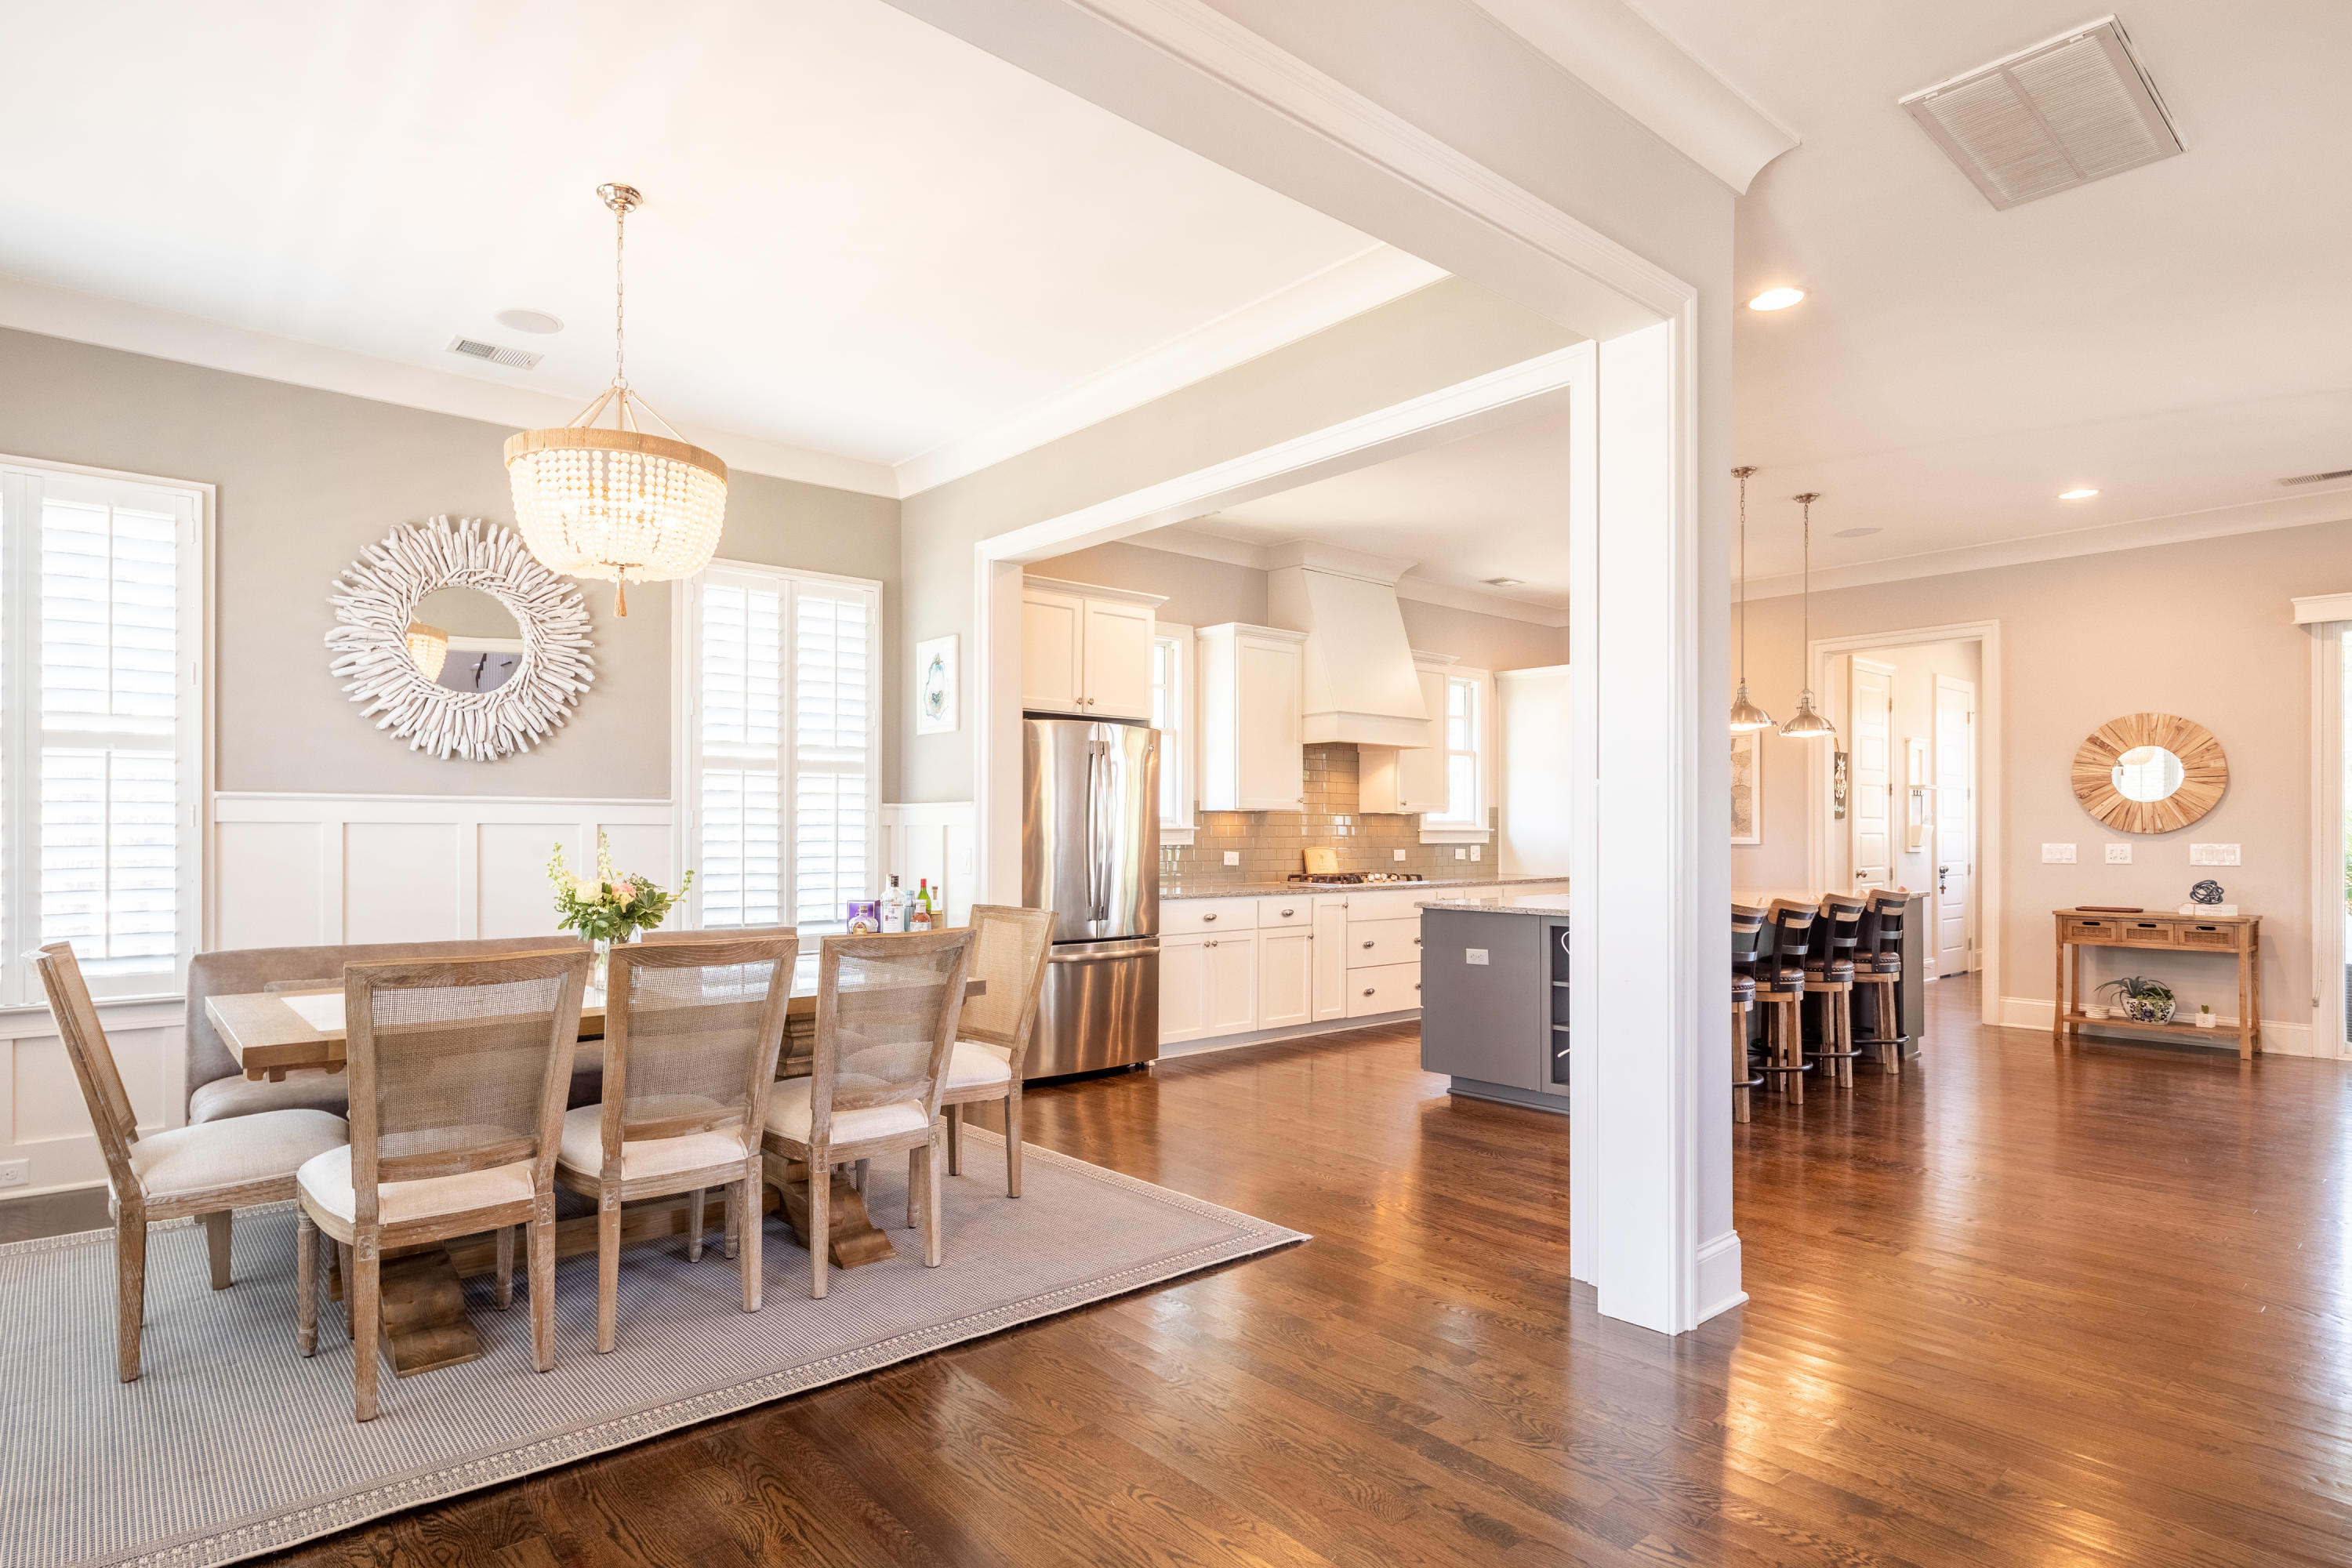 Rivertowne Country Club Homes For Sale - 1633 Rivertowne Country Club, Mount Pleasant, SC - 27